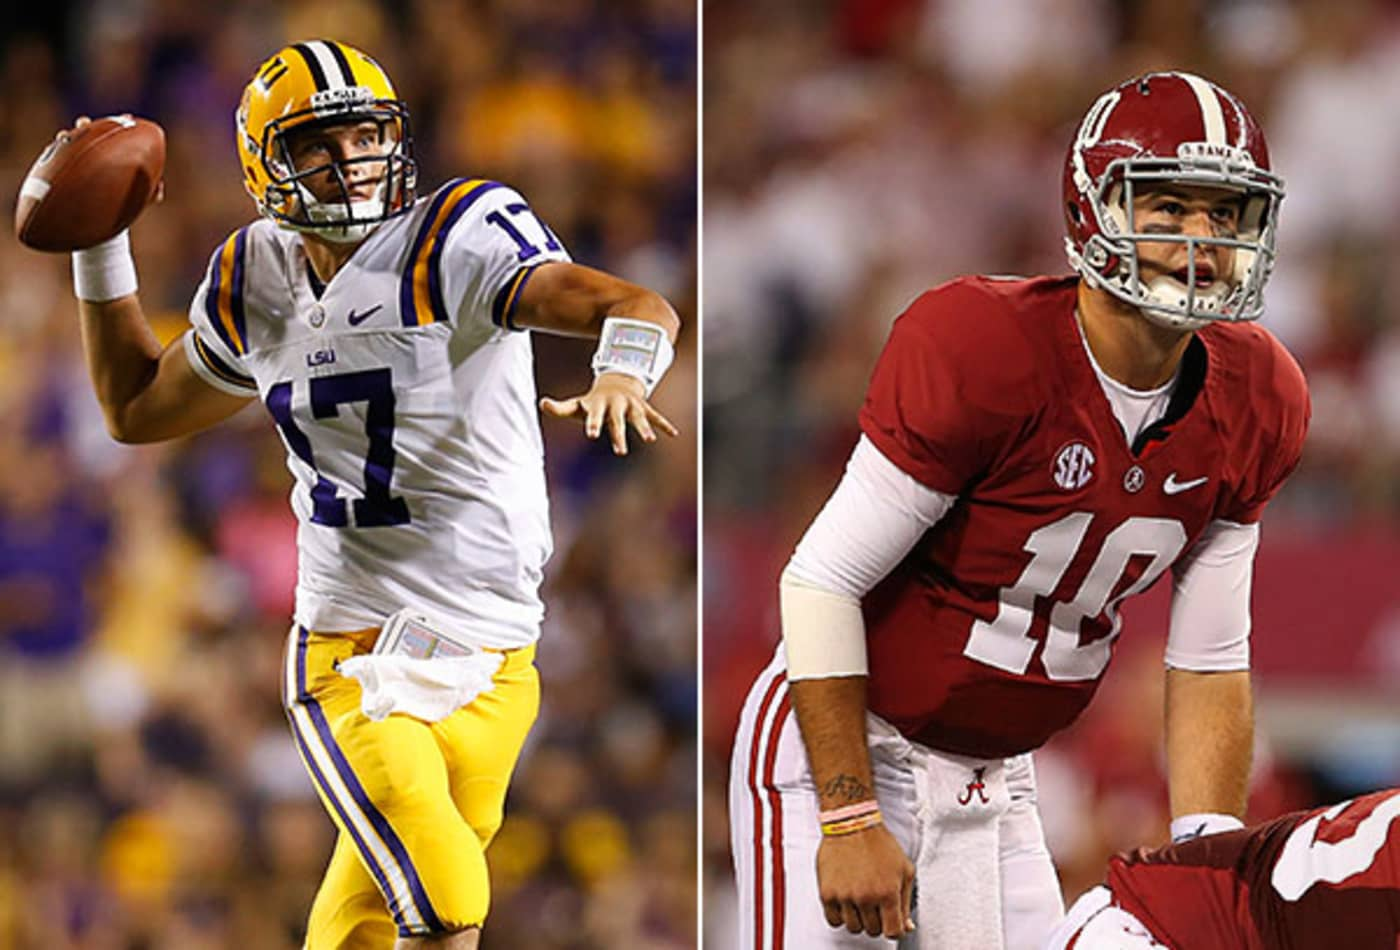 LSU-Alabama-Most-Expensive-College-Football-Tickets-2012.jpg